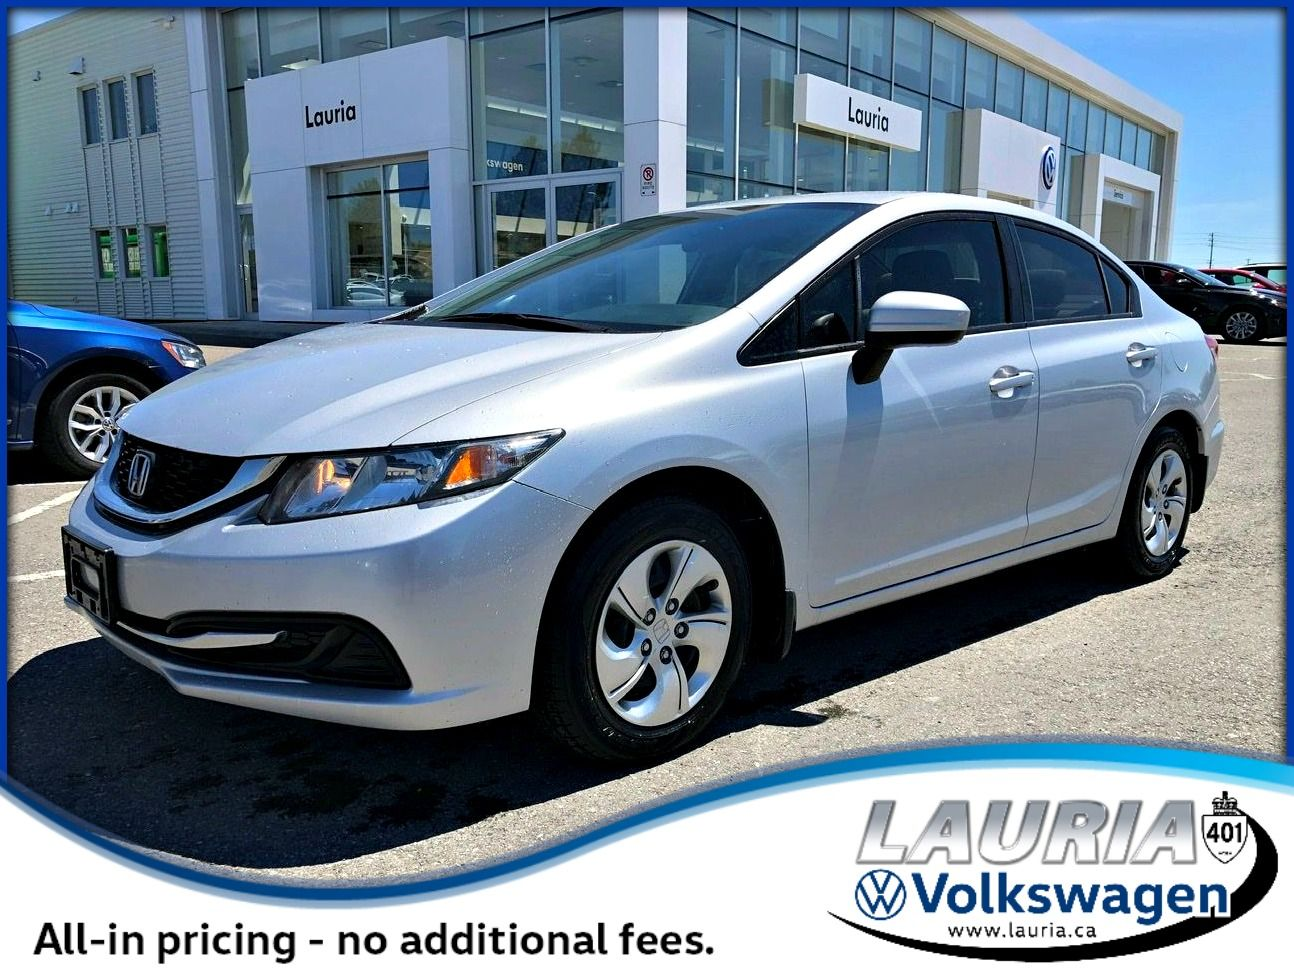 Pre-Owned 2015 Honda Civic LX Auto